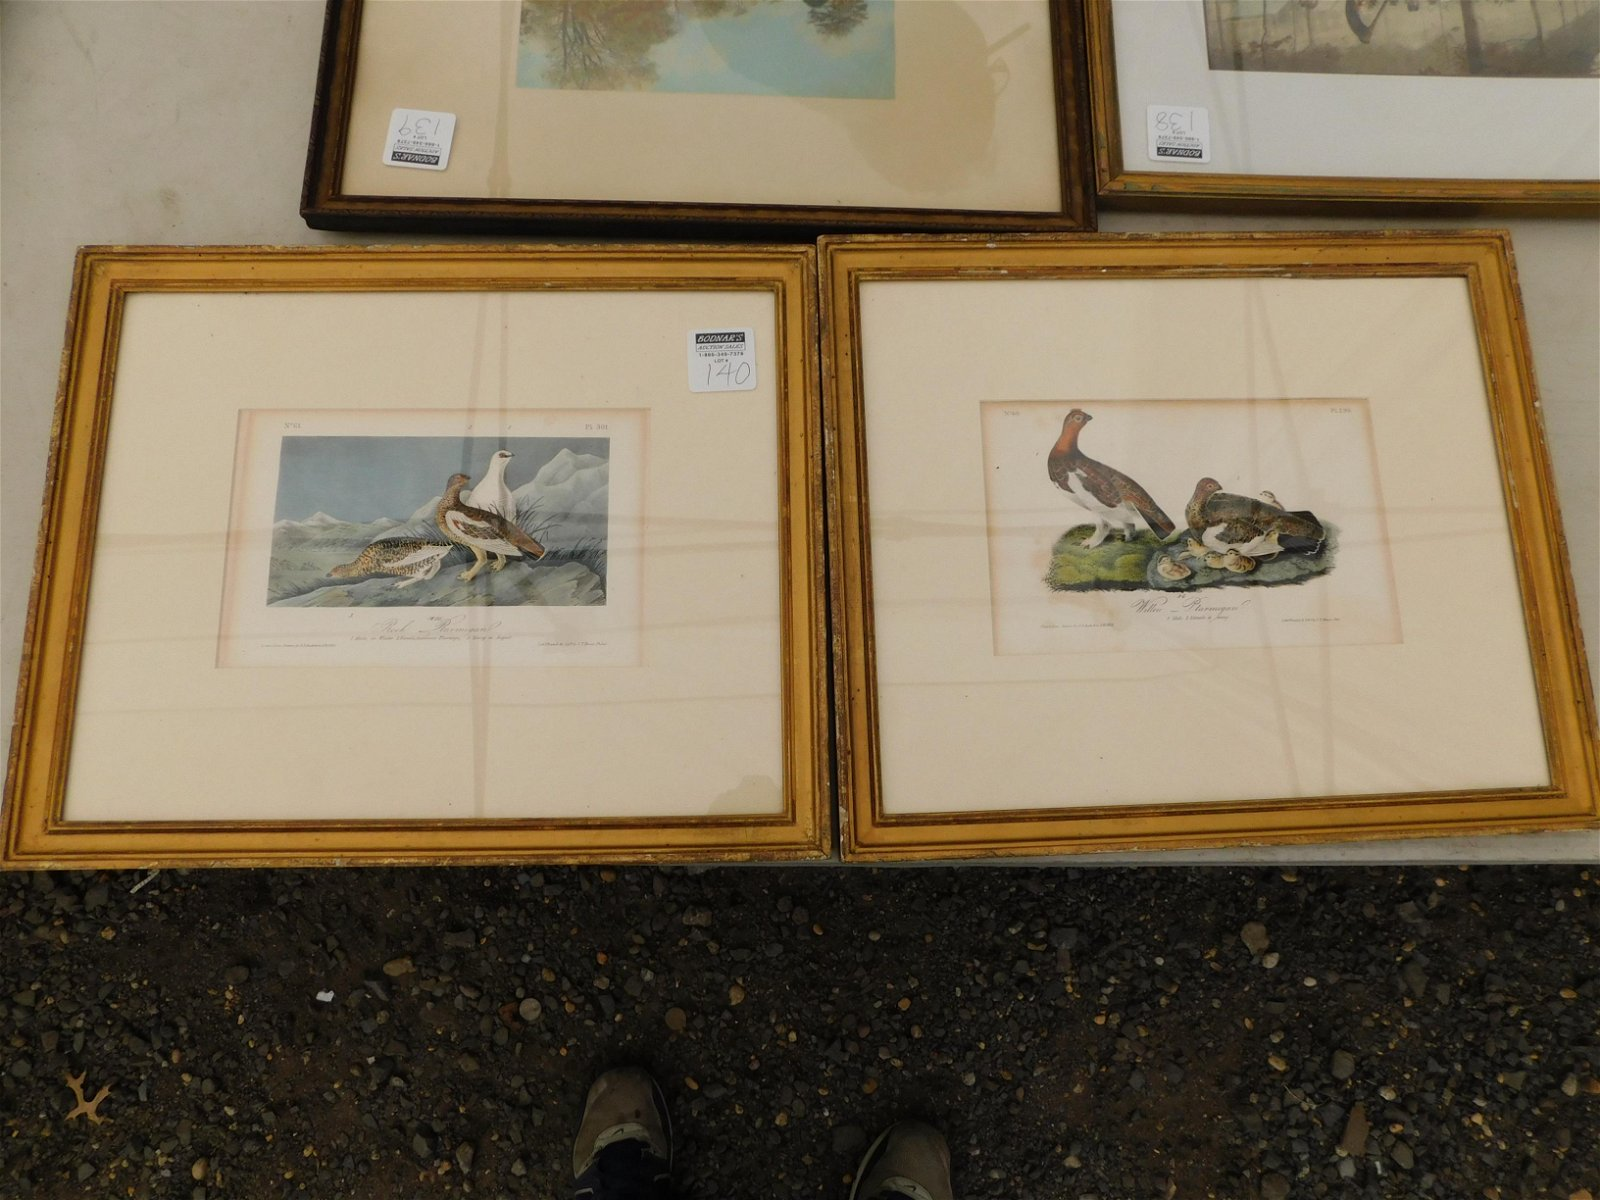 Lot of 2 Bird Etchings